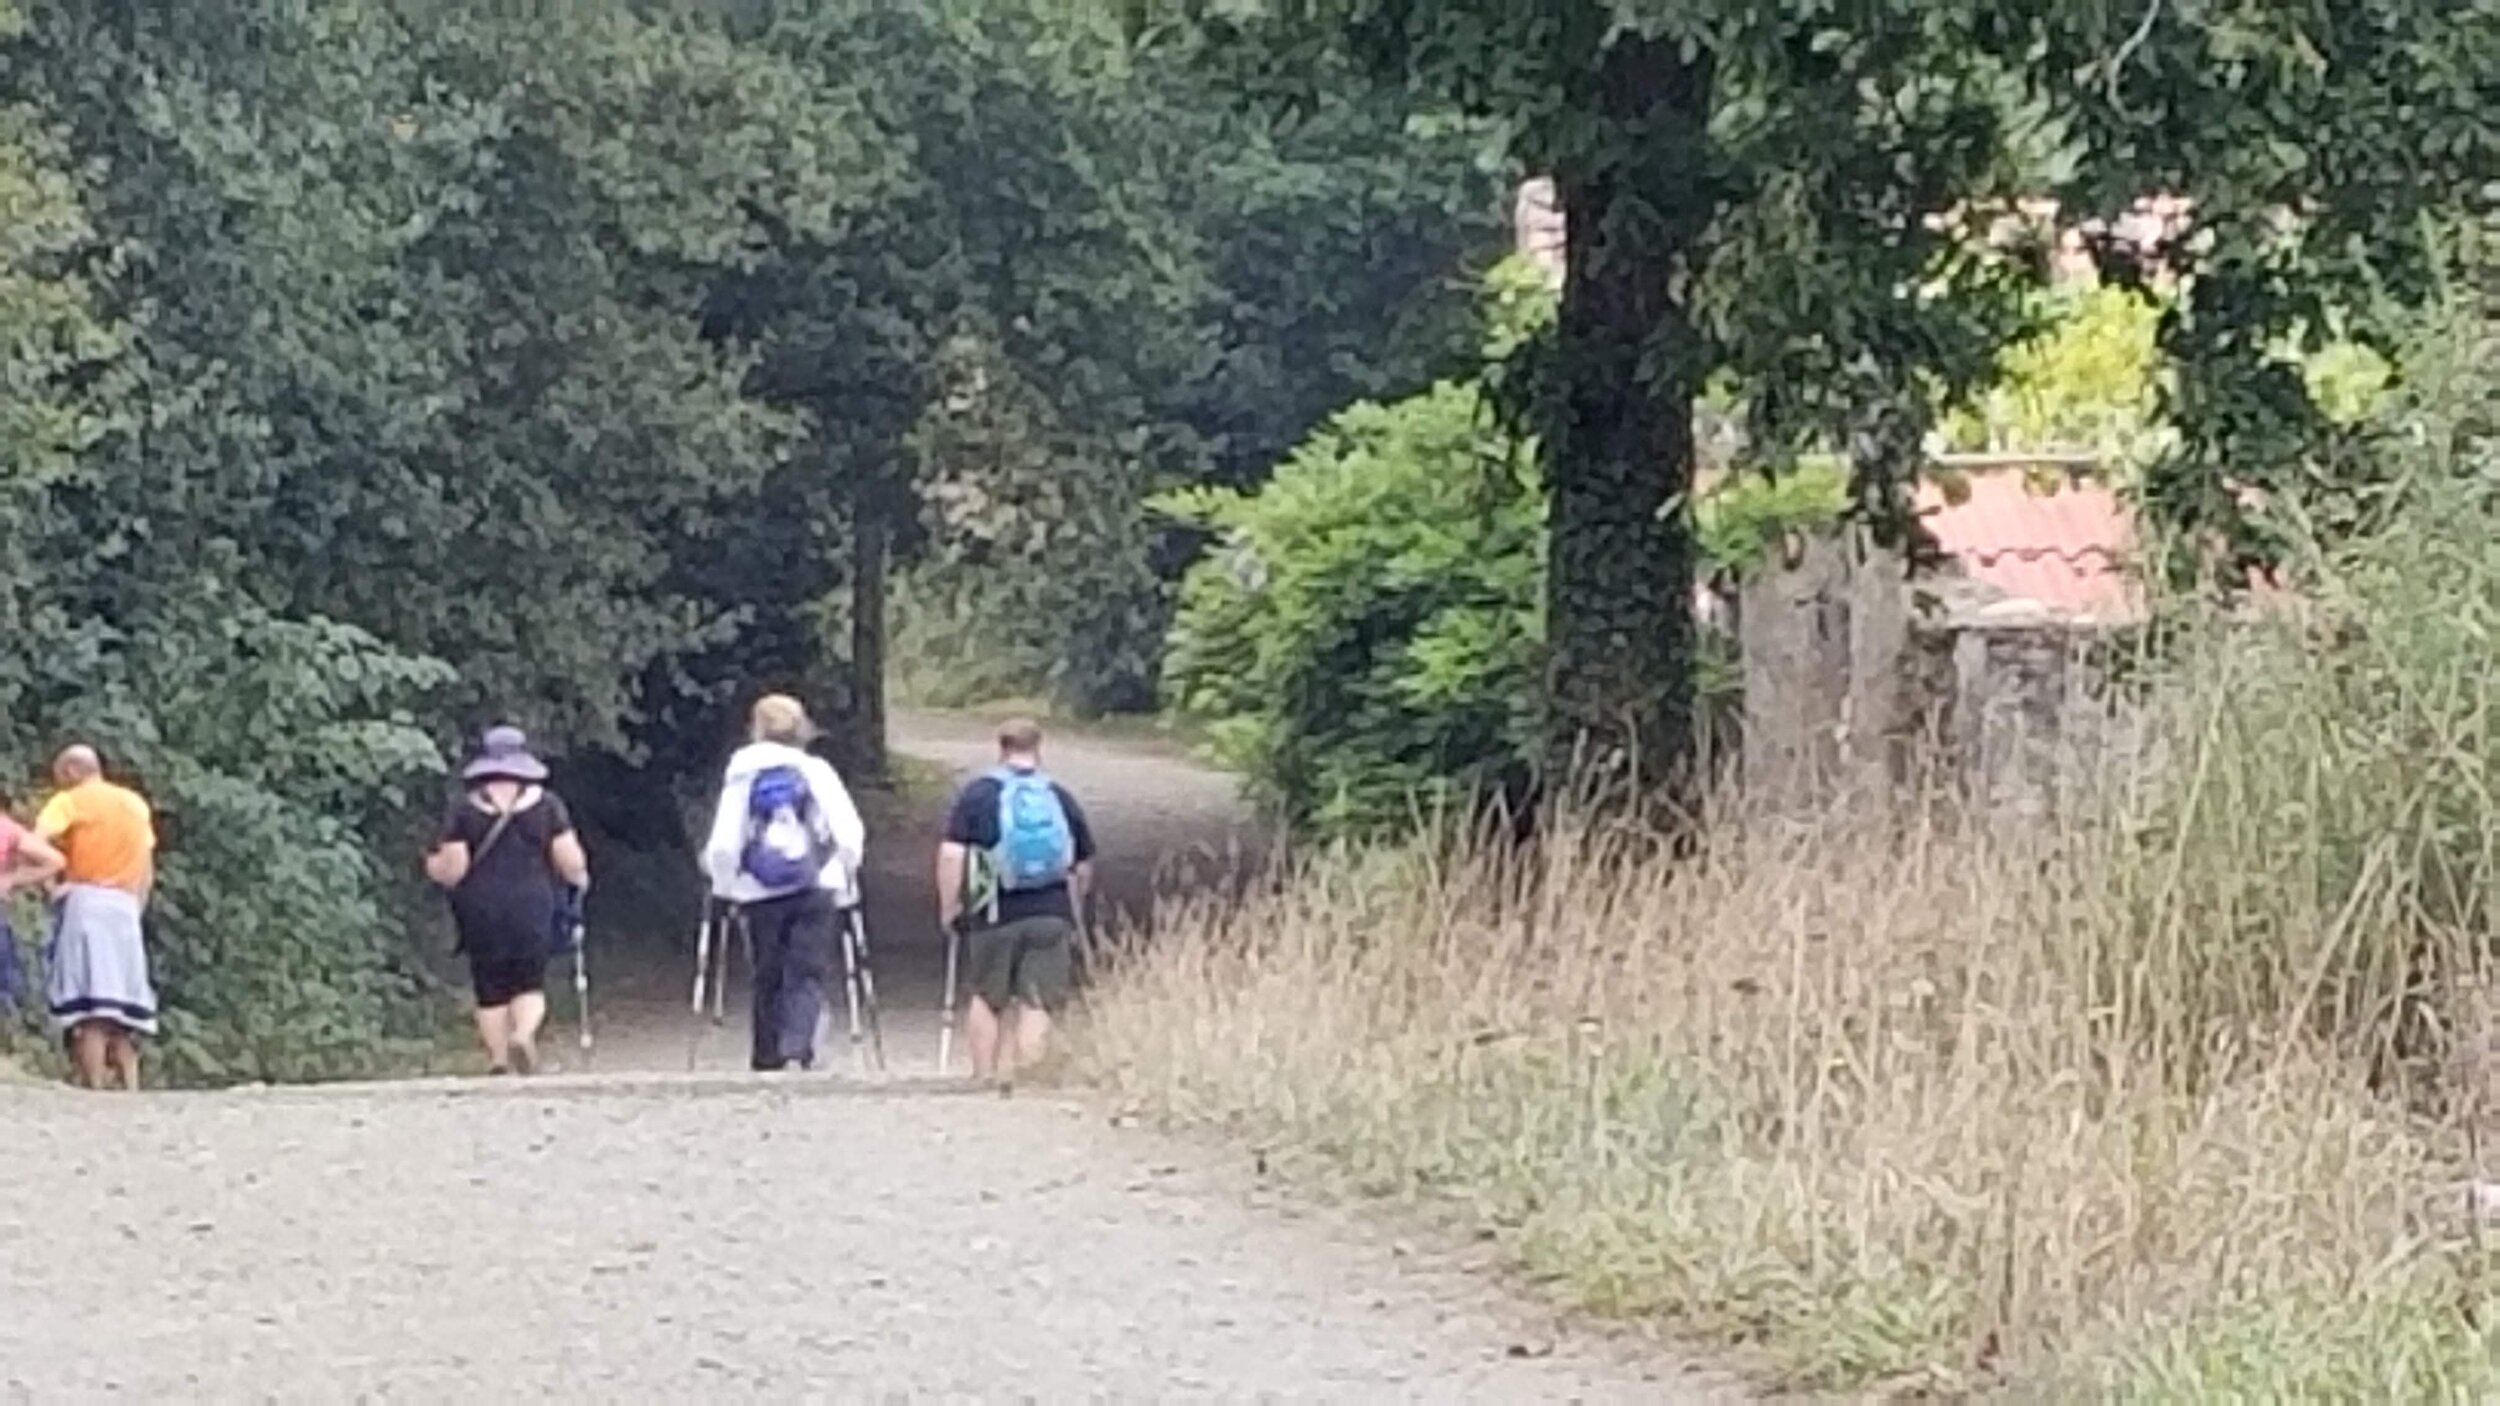 Some of our group on the path